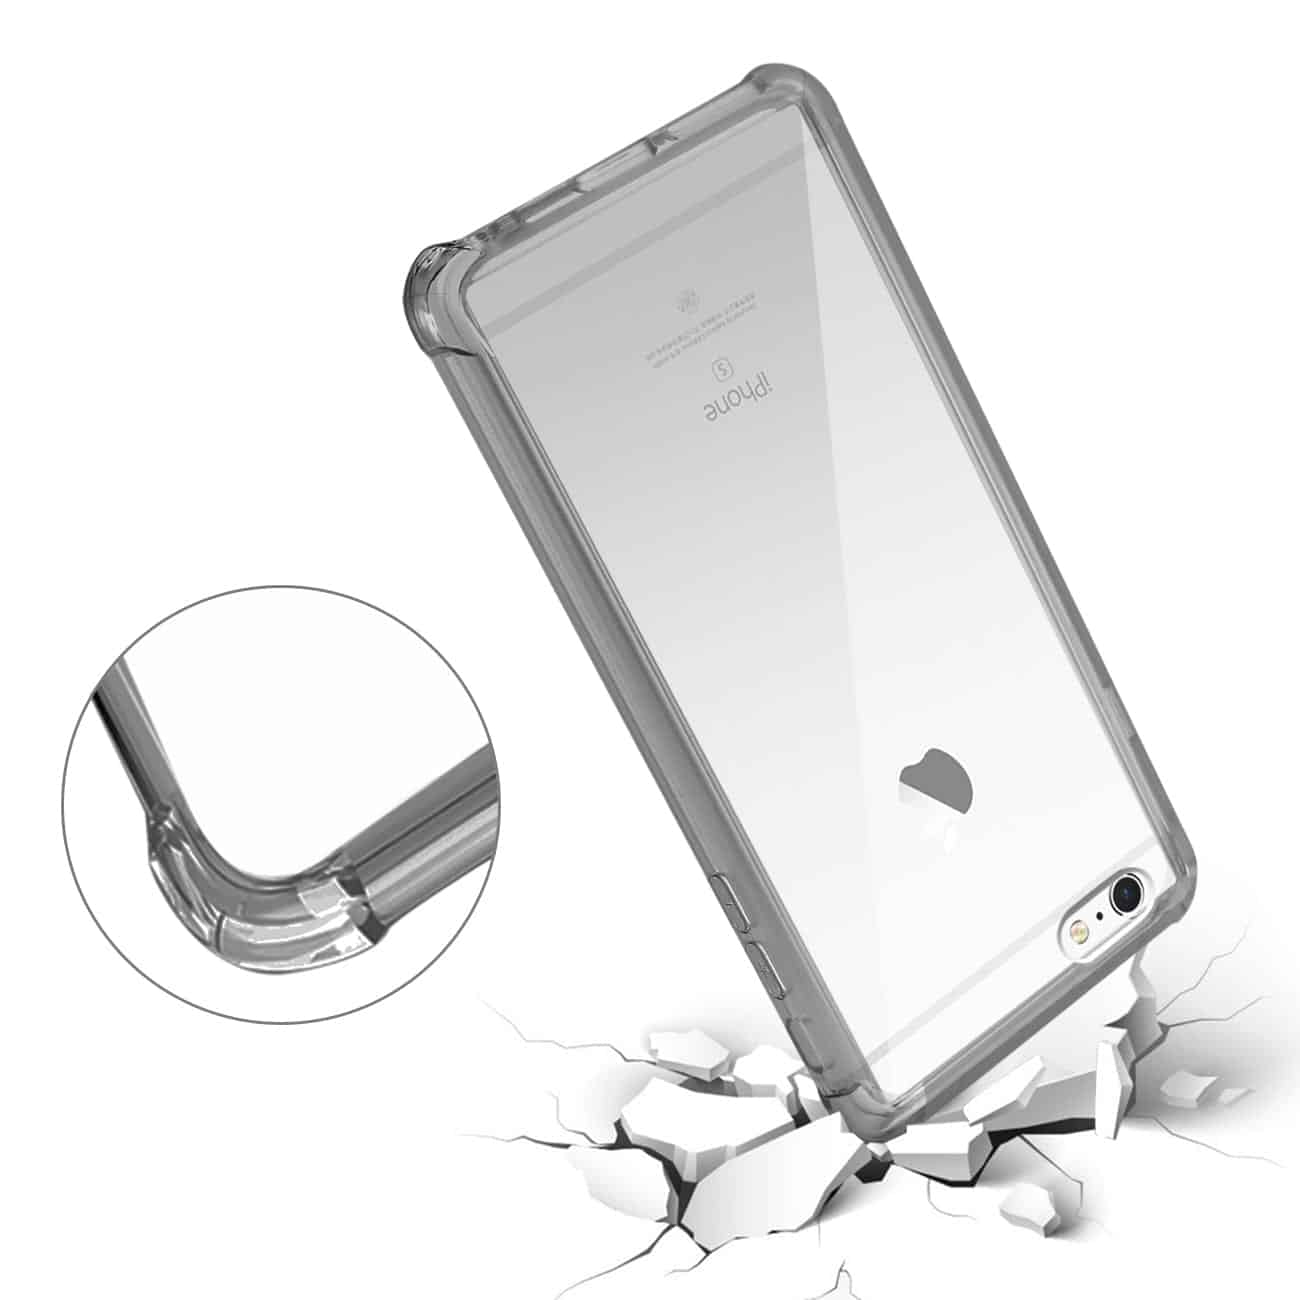 IPHONE 6 PLUS/ 6S PLUS/ 7 PLUS CLEAR BUMPER CASE WITH AIR CUSHION PROTECTION IN CLEAR BLACK